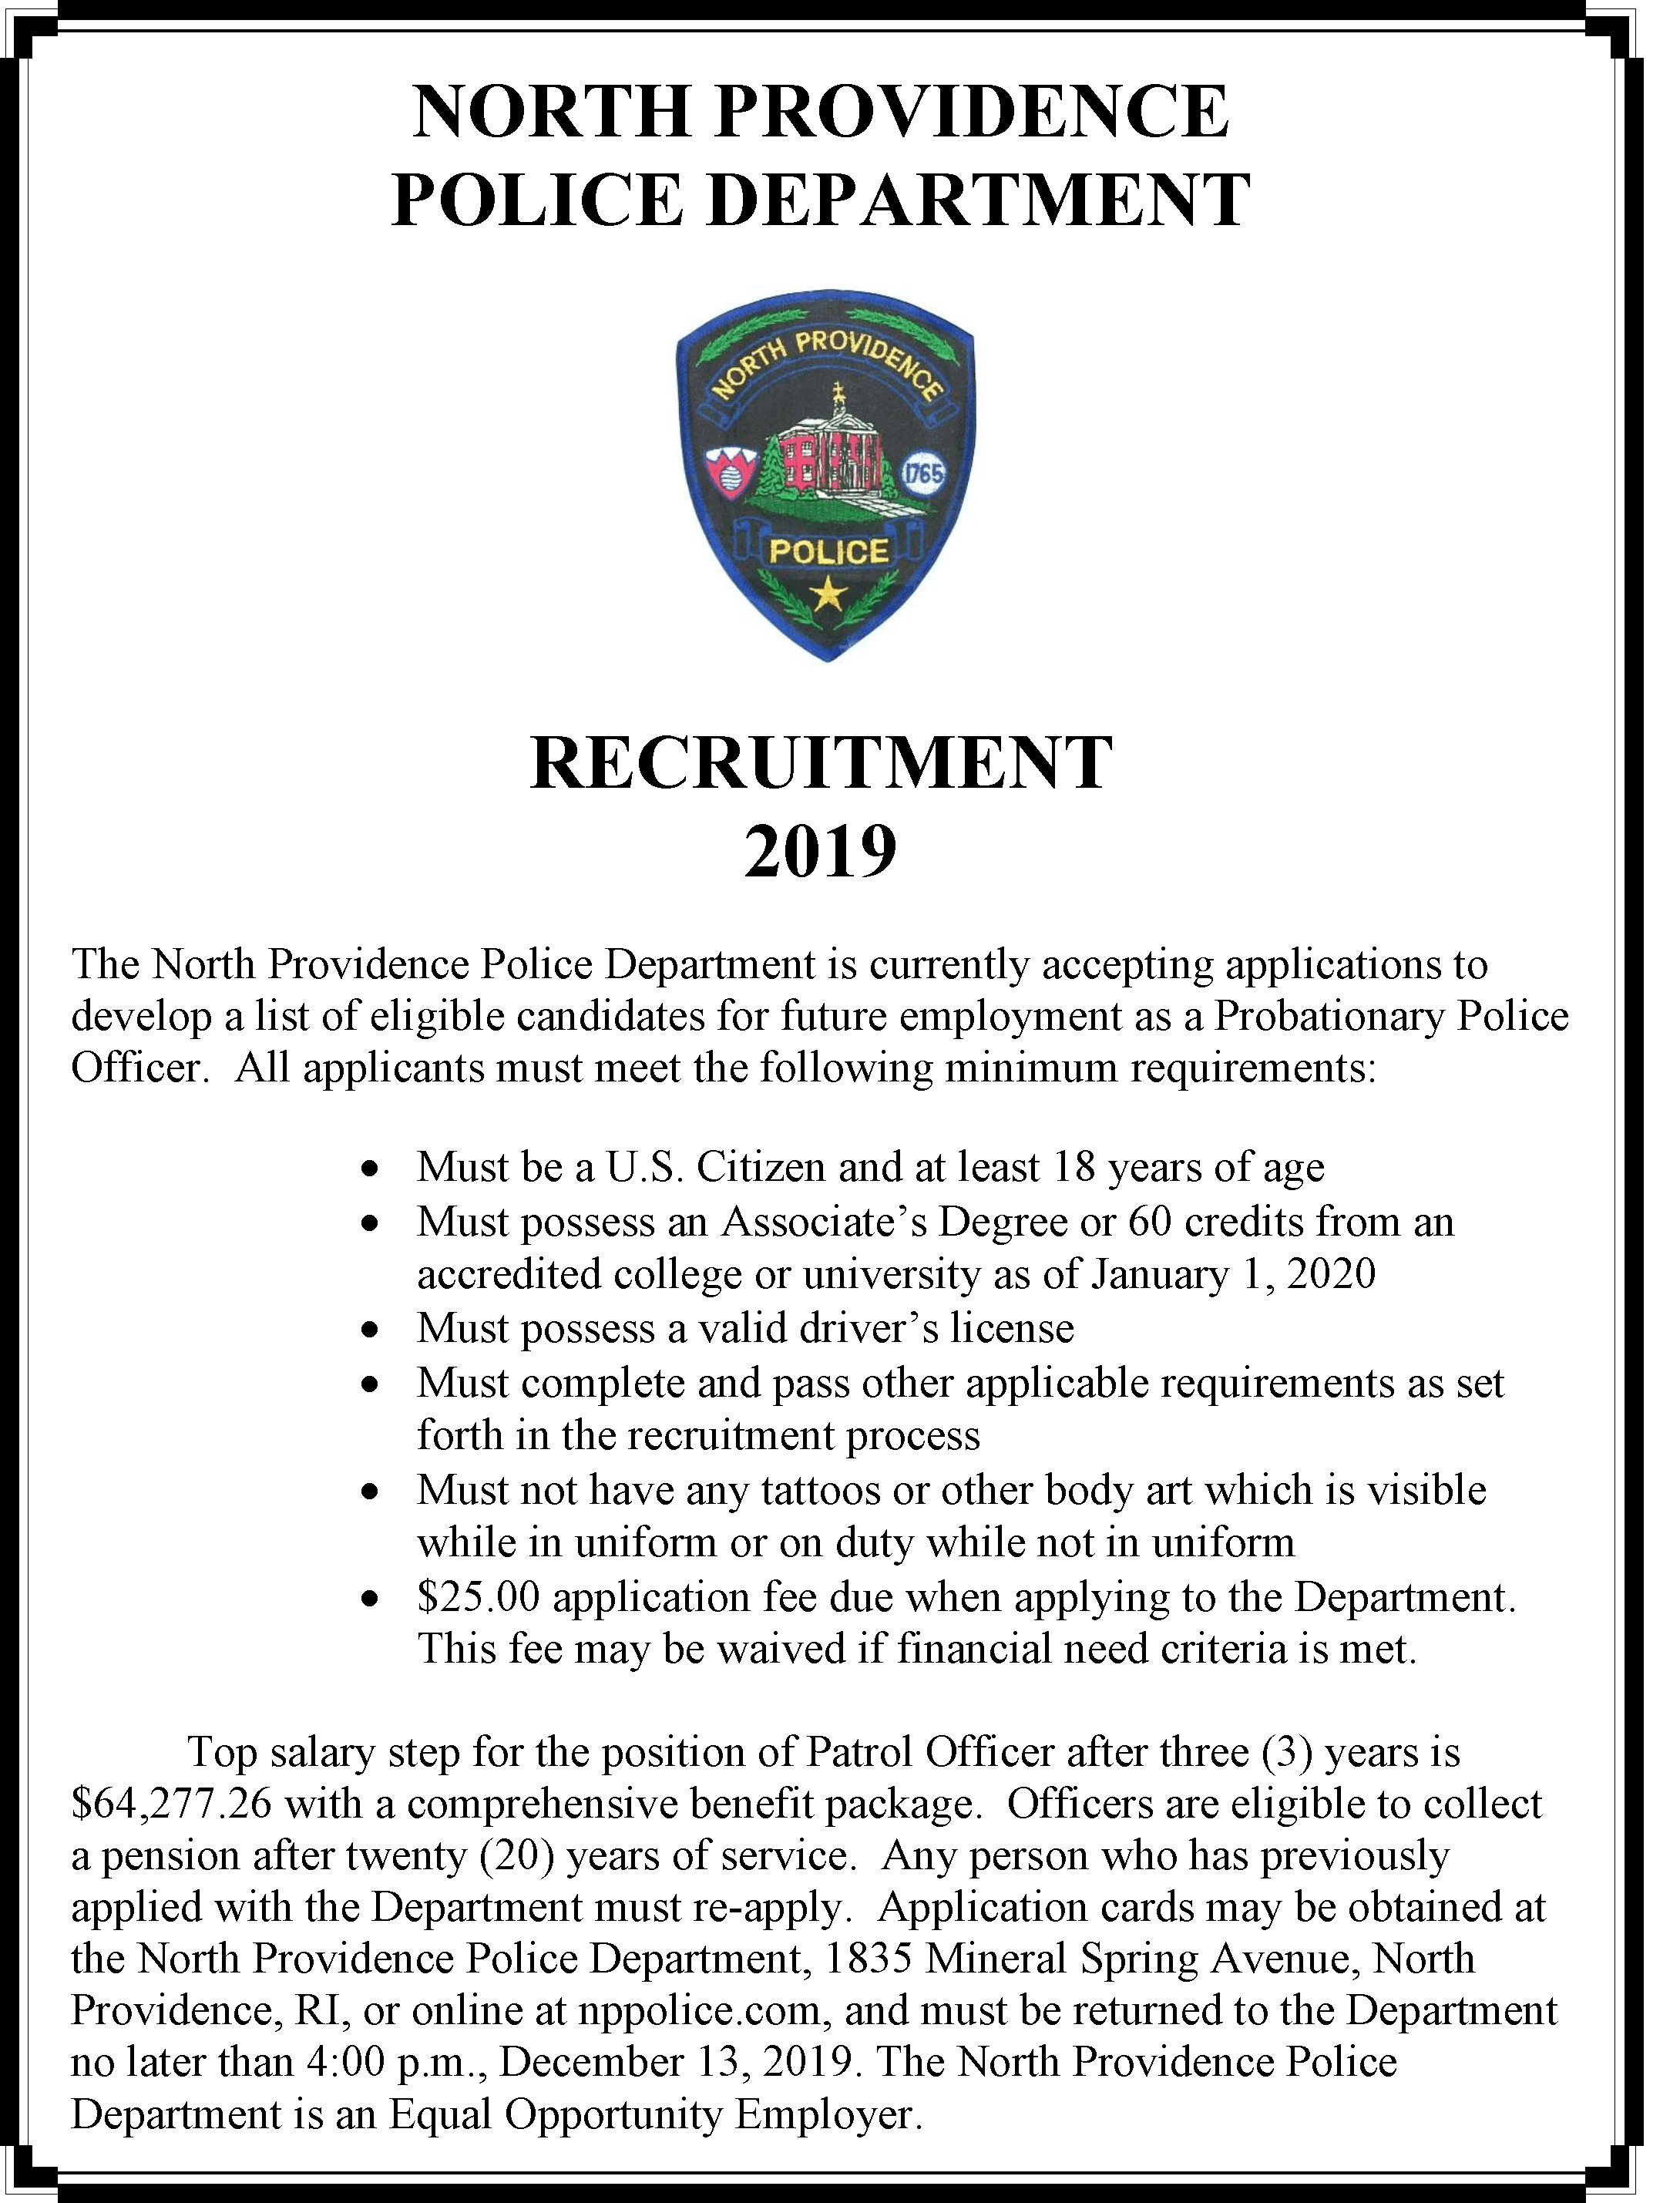 North Providence Police Department's 2019 Recruitment Drive Begins Monday, November 4th